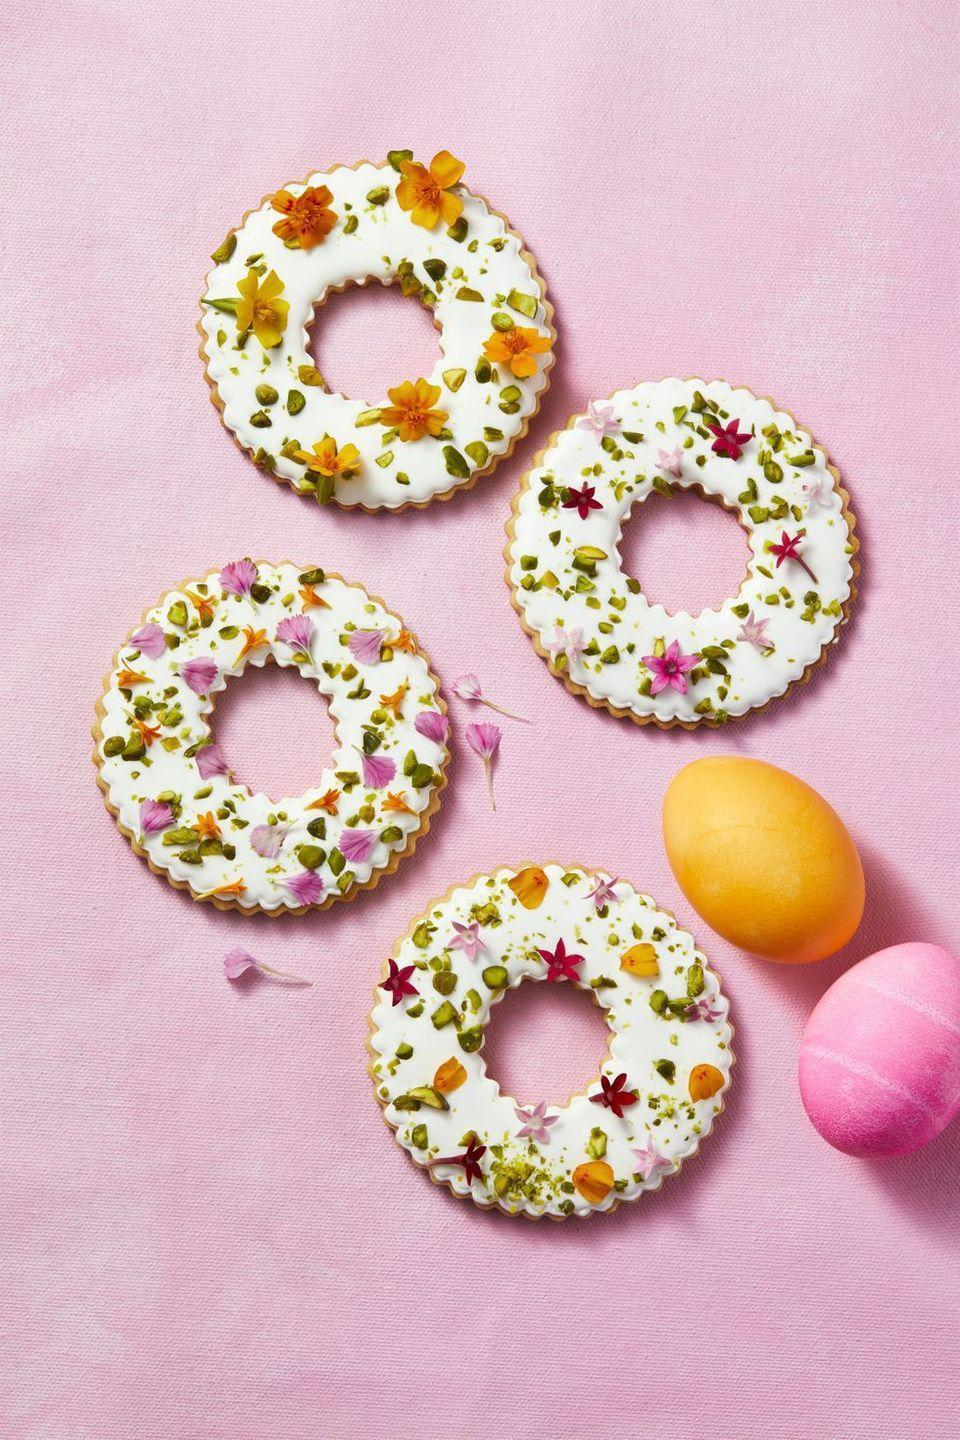 "<p>Crushed pistachios and edible blooms give simple sugar cookies a whole new life. </p><p><a class=""link rapid-noclick-resp"" href=""https://www.amazon.com/Ateco-5307-Cutters-Graduated-Stainless/dp/B00004S1CH?tag=syn-yahoo-20&ascsubtag=%5Bartid%7C10055.g.4249%5Bsrc%7Cyahoo-us"" rel=""nofollow noopener"" target=""_blank"" data-ylk=""slk:SHOP FLUTED COOKIE CUTTERS"">SHOP FLUTED COOKIE CUTTERS</a></p><p><em><a href=""https://www.goodhousekeeping.com/food-recipes/a6874/sugar-cookies-4477/"" rel=""nofollow noopener"" target=""_blank"" data-ylk=""slk:Get the recipe for Easy Sugar Cookies »"" class=""link rapid-noclick-resp"">Get the recipe for Easy Sugar Cookies »</a></em></p>"